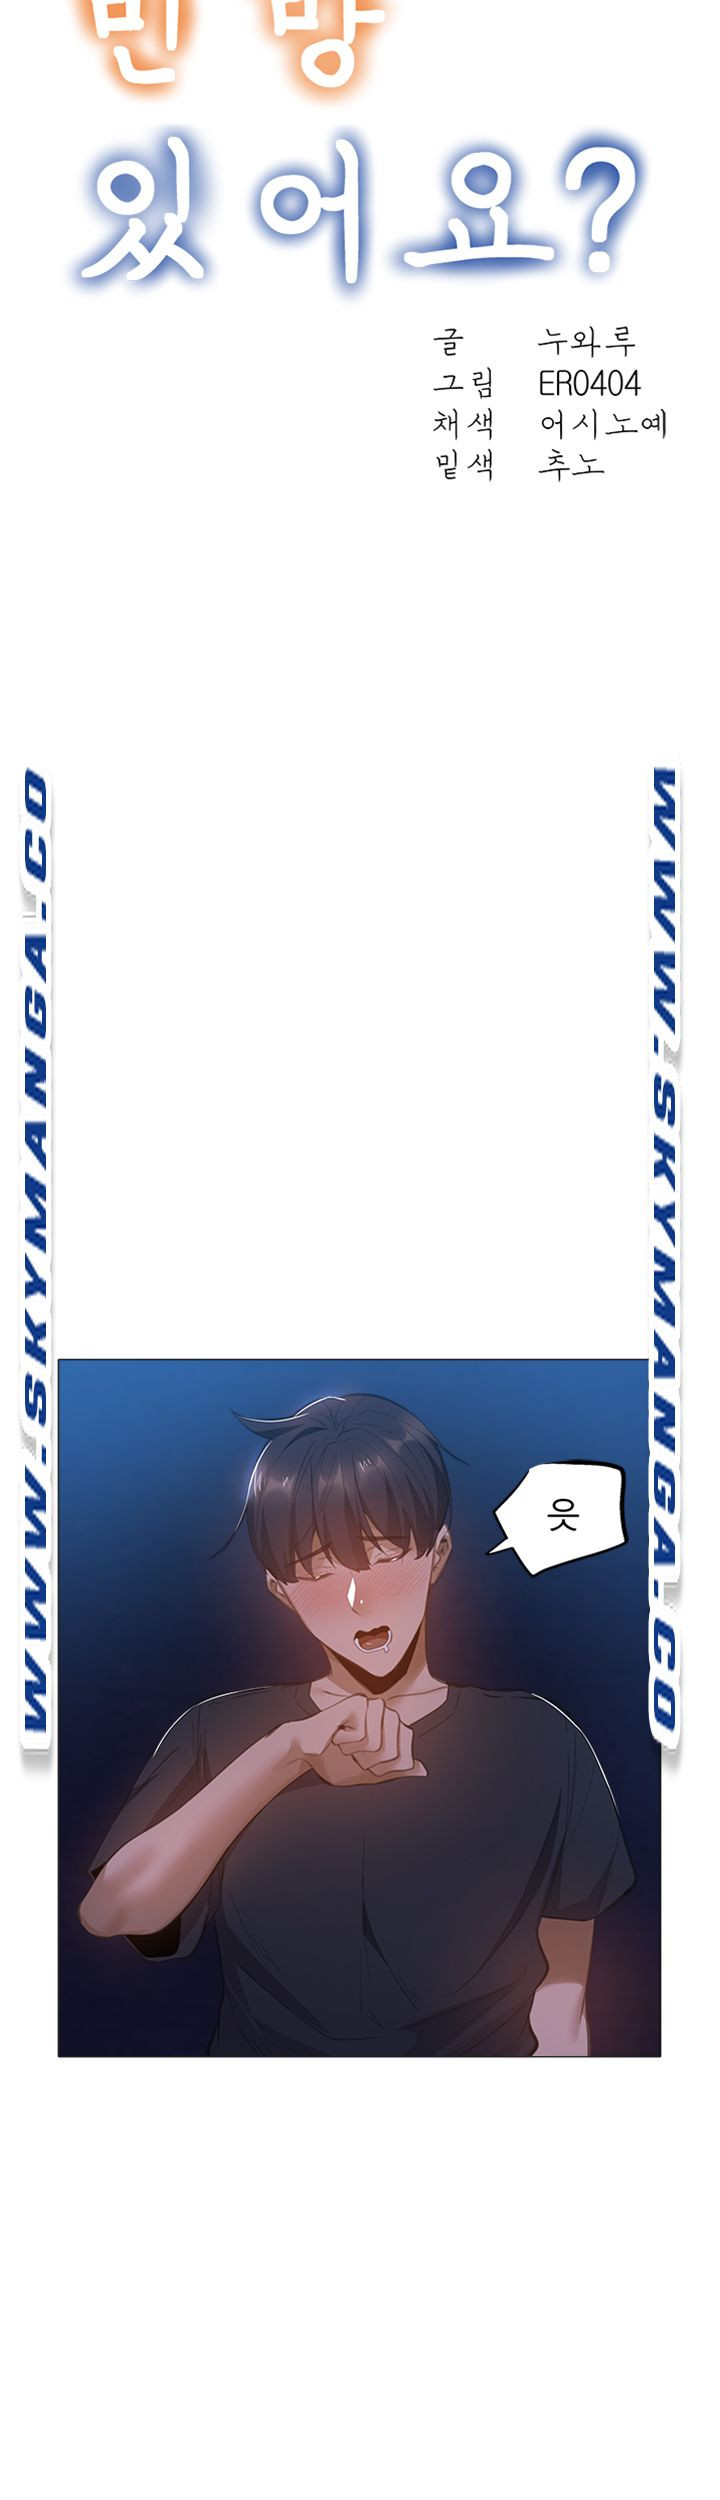 Is there an Empty Room Raw Chapter 20 - Manhwa18.com